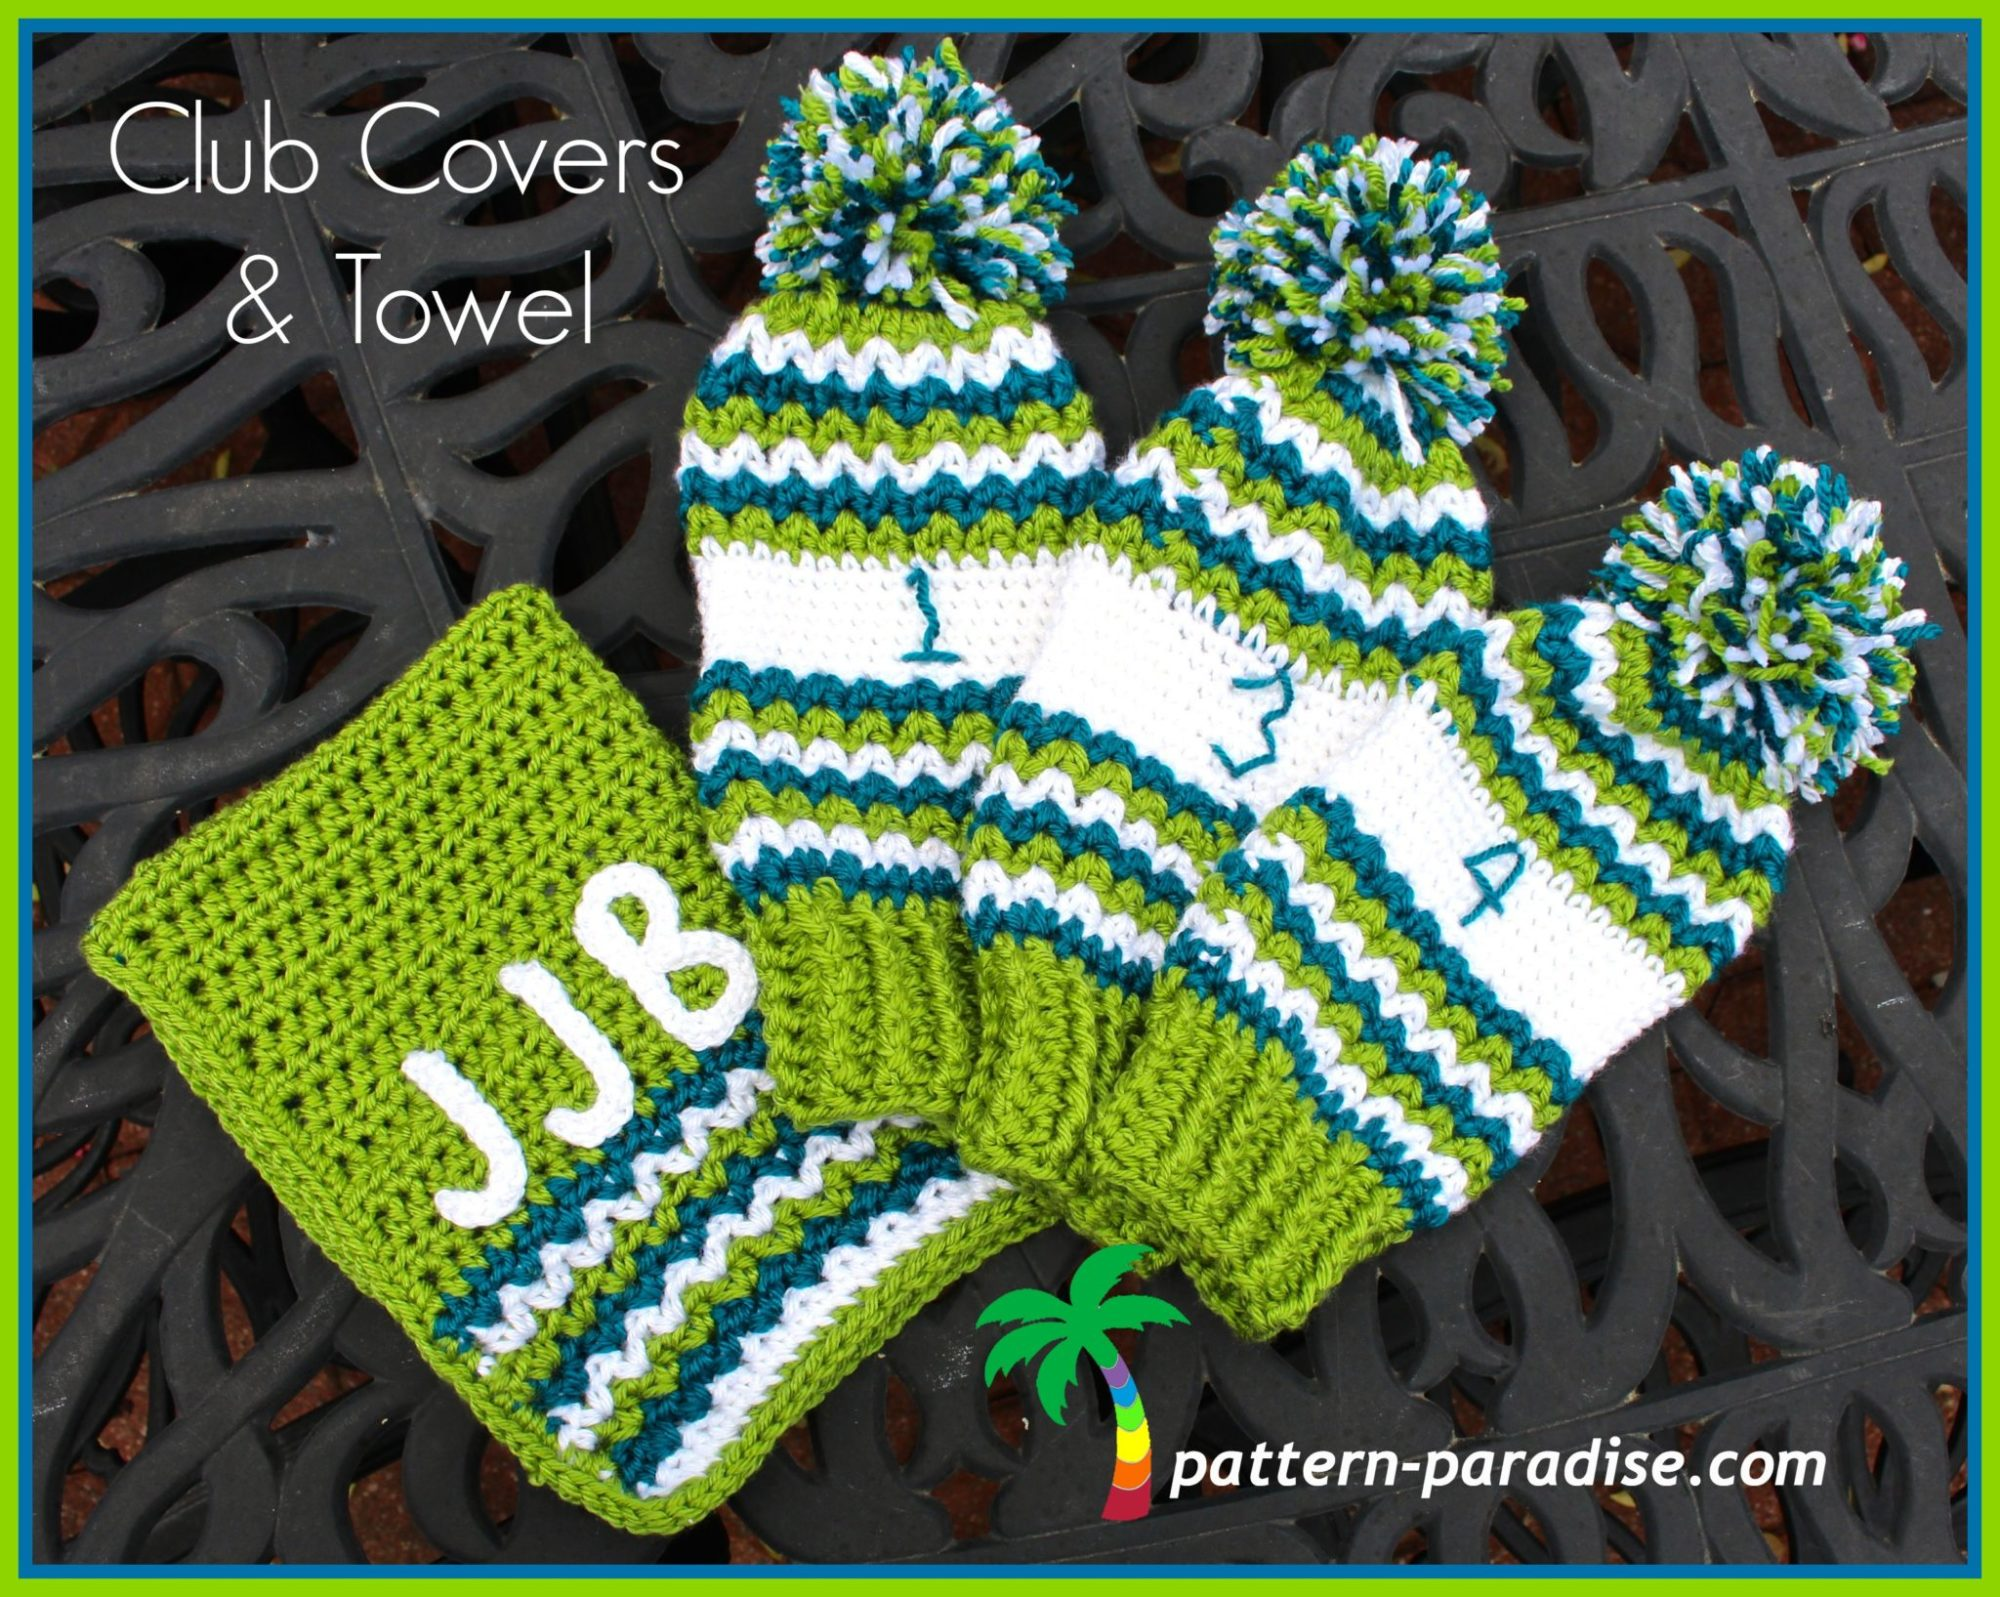 FREE Crochet Pattern - Golf Club Covers and Towel | Pattern Paradise